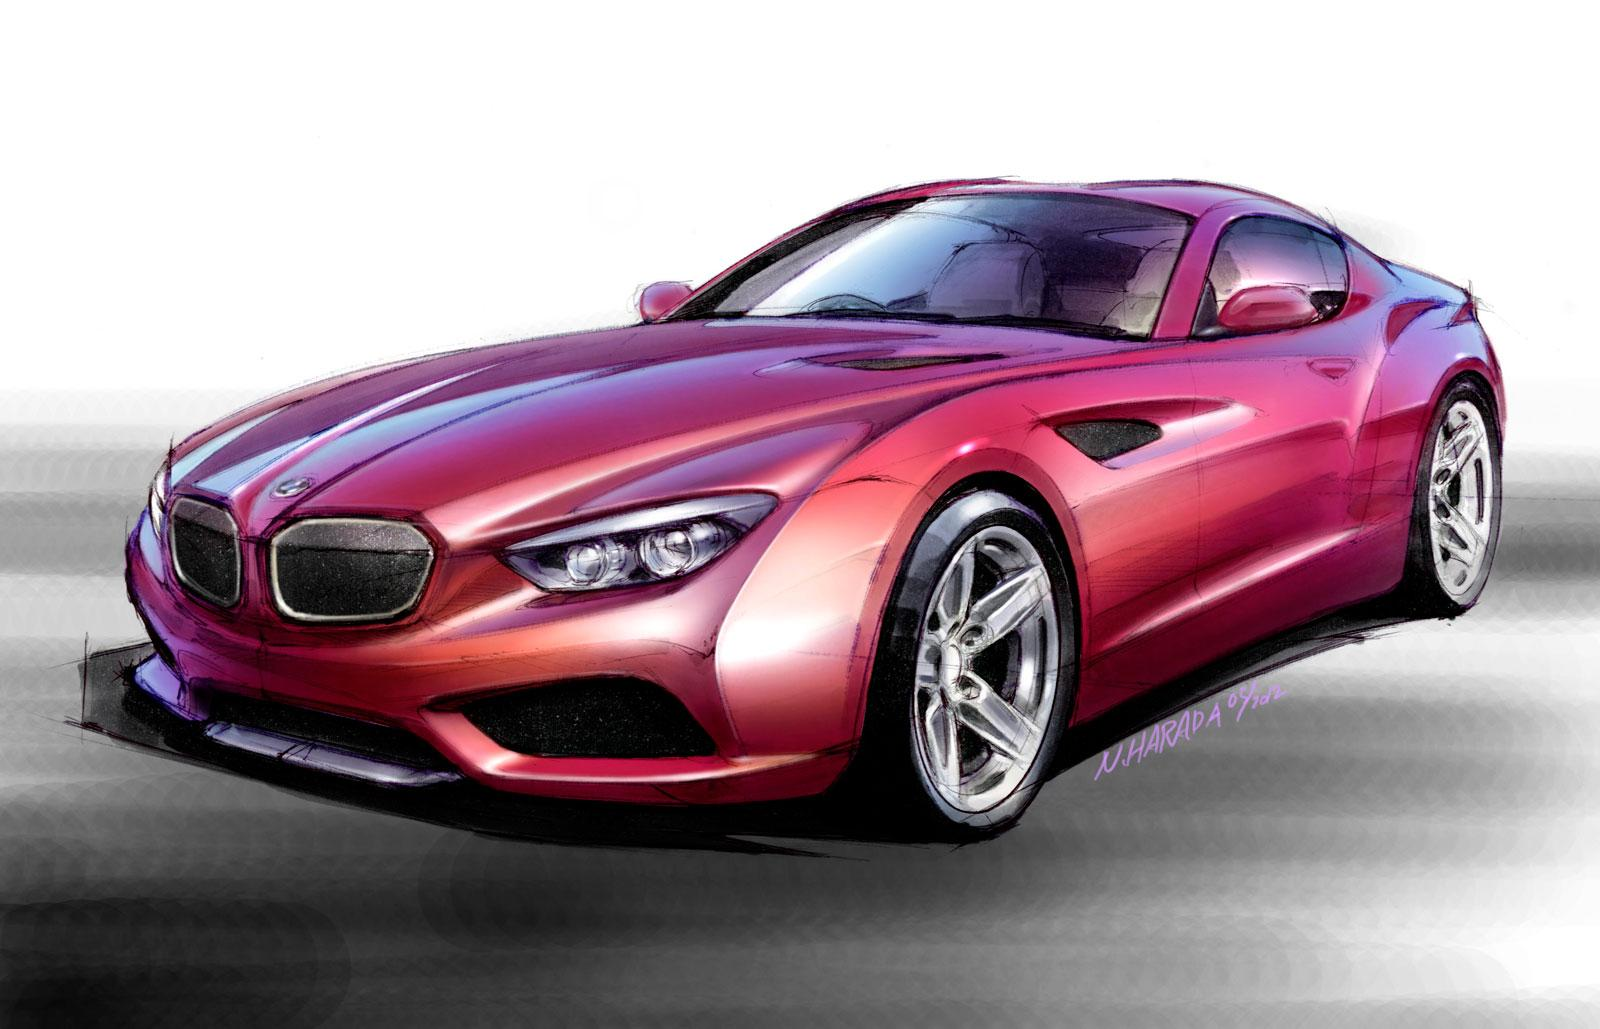 BMW Zagato Coupé - Design Sketch by Norihiko Harada, Chief Designer Zagato - Car Body Design